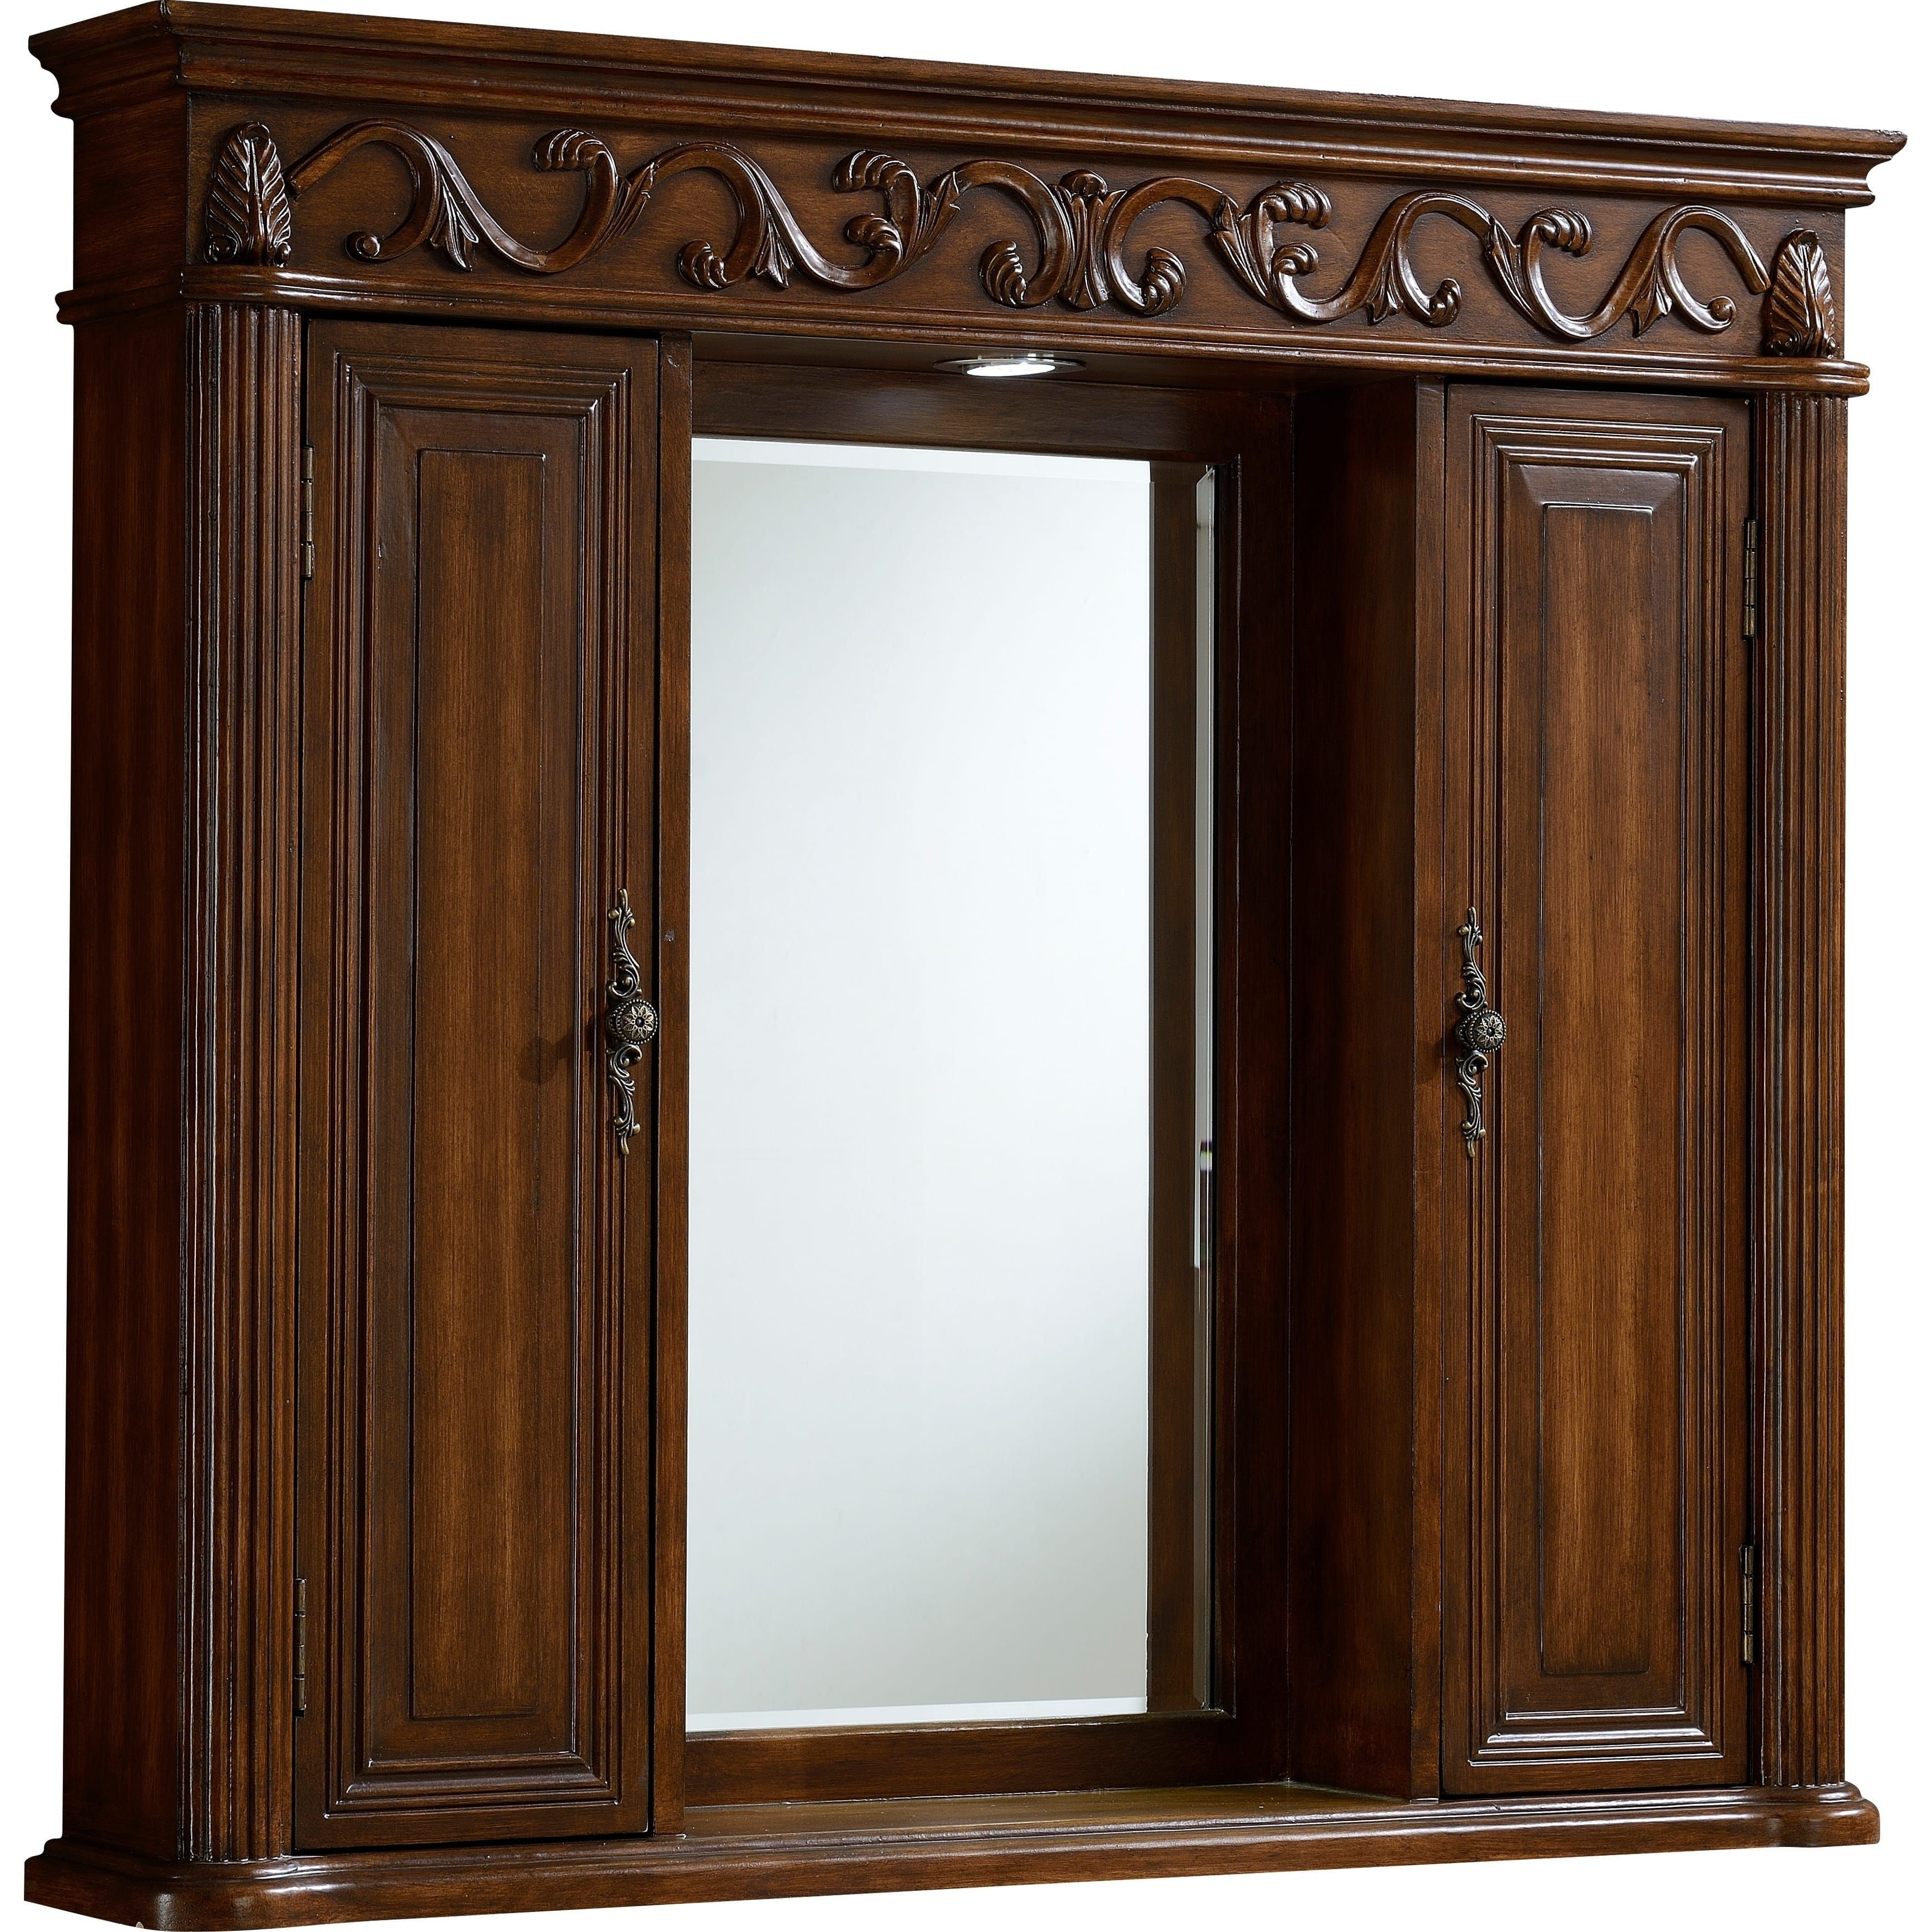 pictures medicine cabinet size x inspirations of modern dazzling brown locking cabinets base full jensen recessed